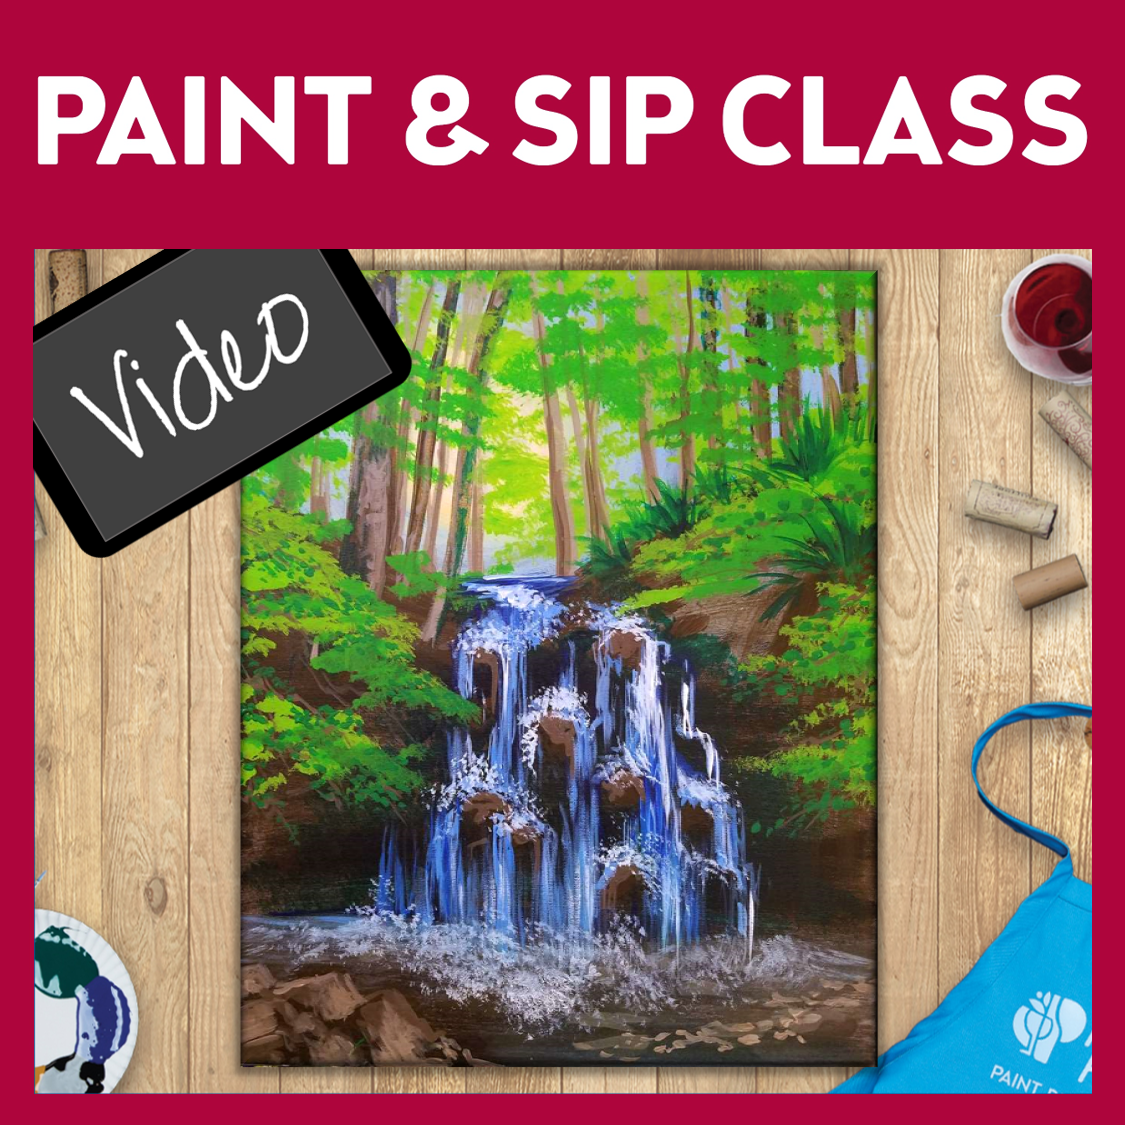 Paint & Sip Video !!